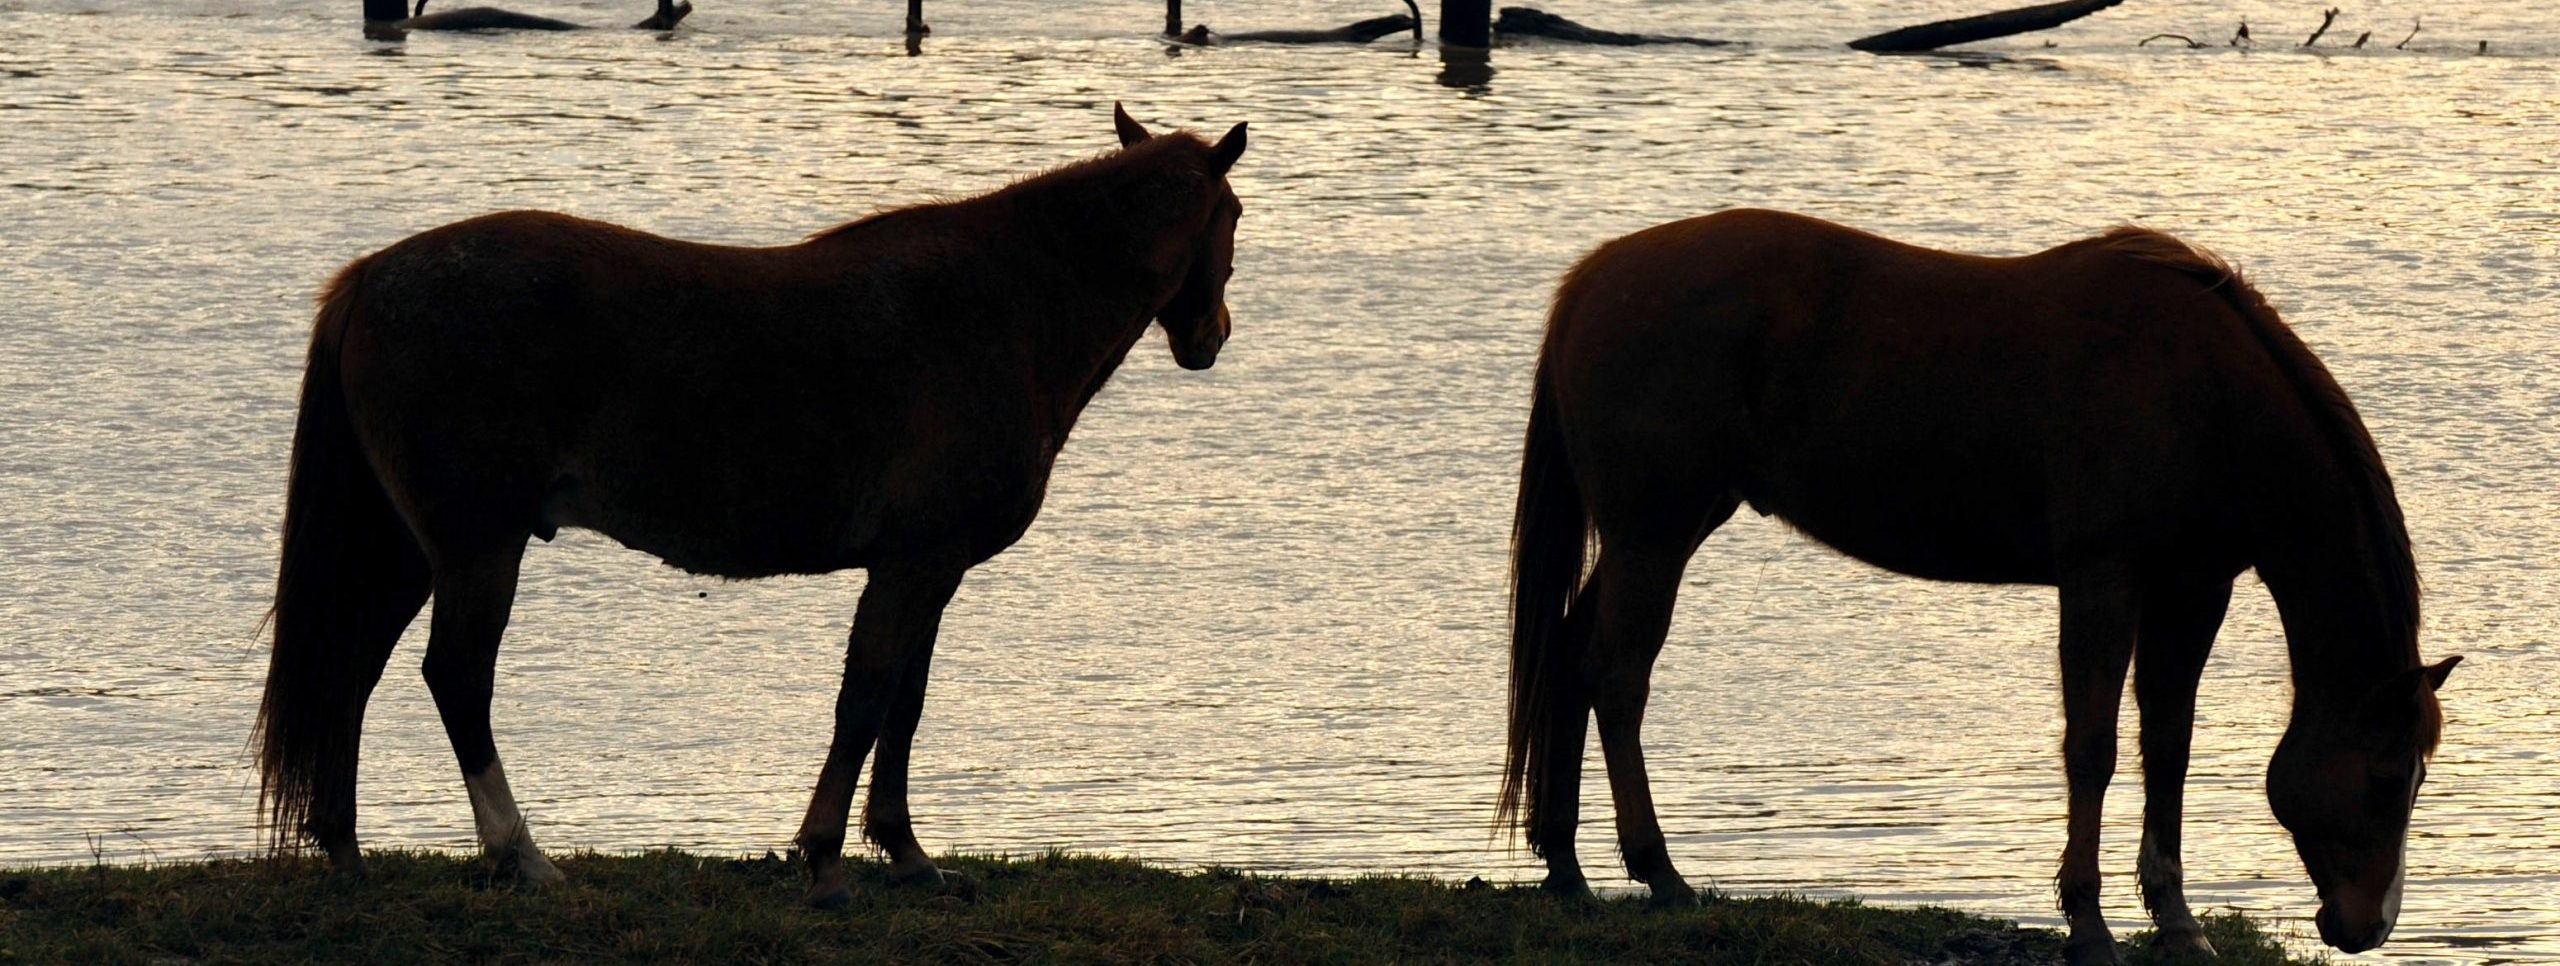 Eureka, MO- Two horses investigate the flood waters that have overtaken their normally dry pasture.  Jocelyn Augustino/FEMA